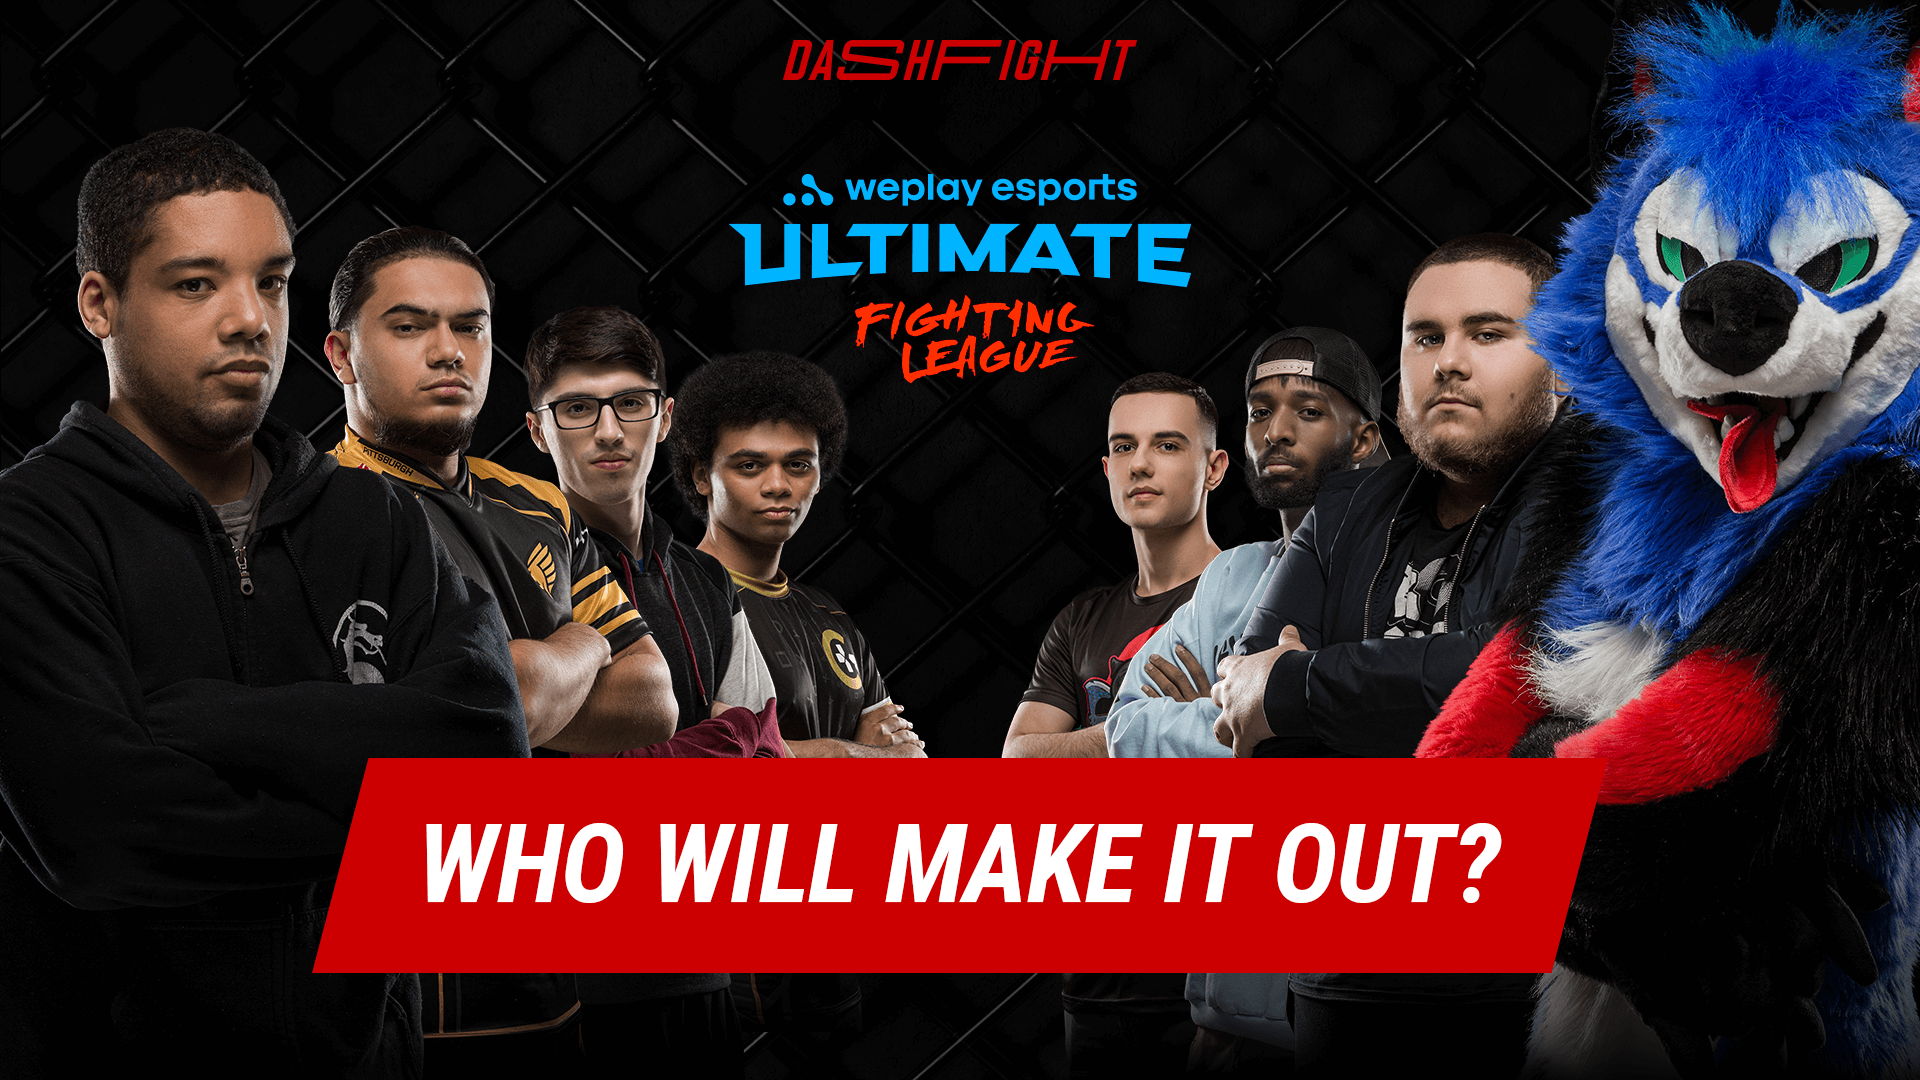 WUFL S1 MK11 Group A Player Picks and Tactics